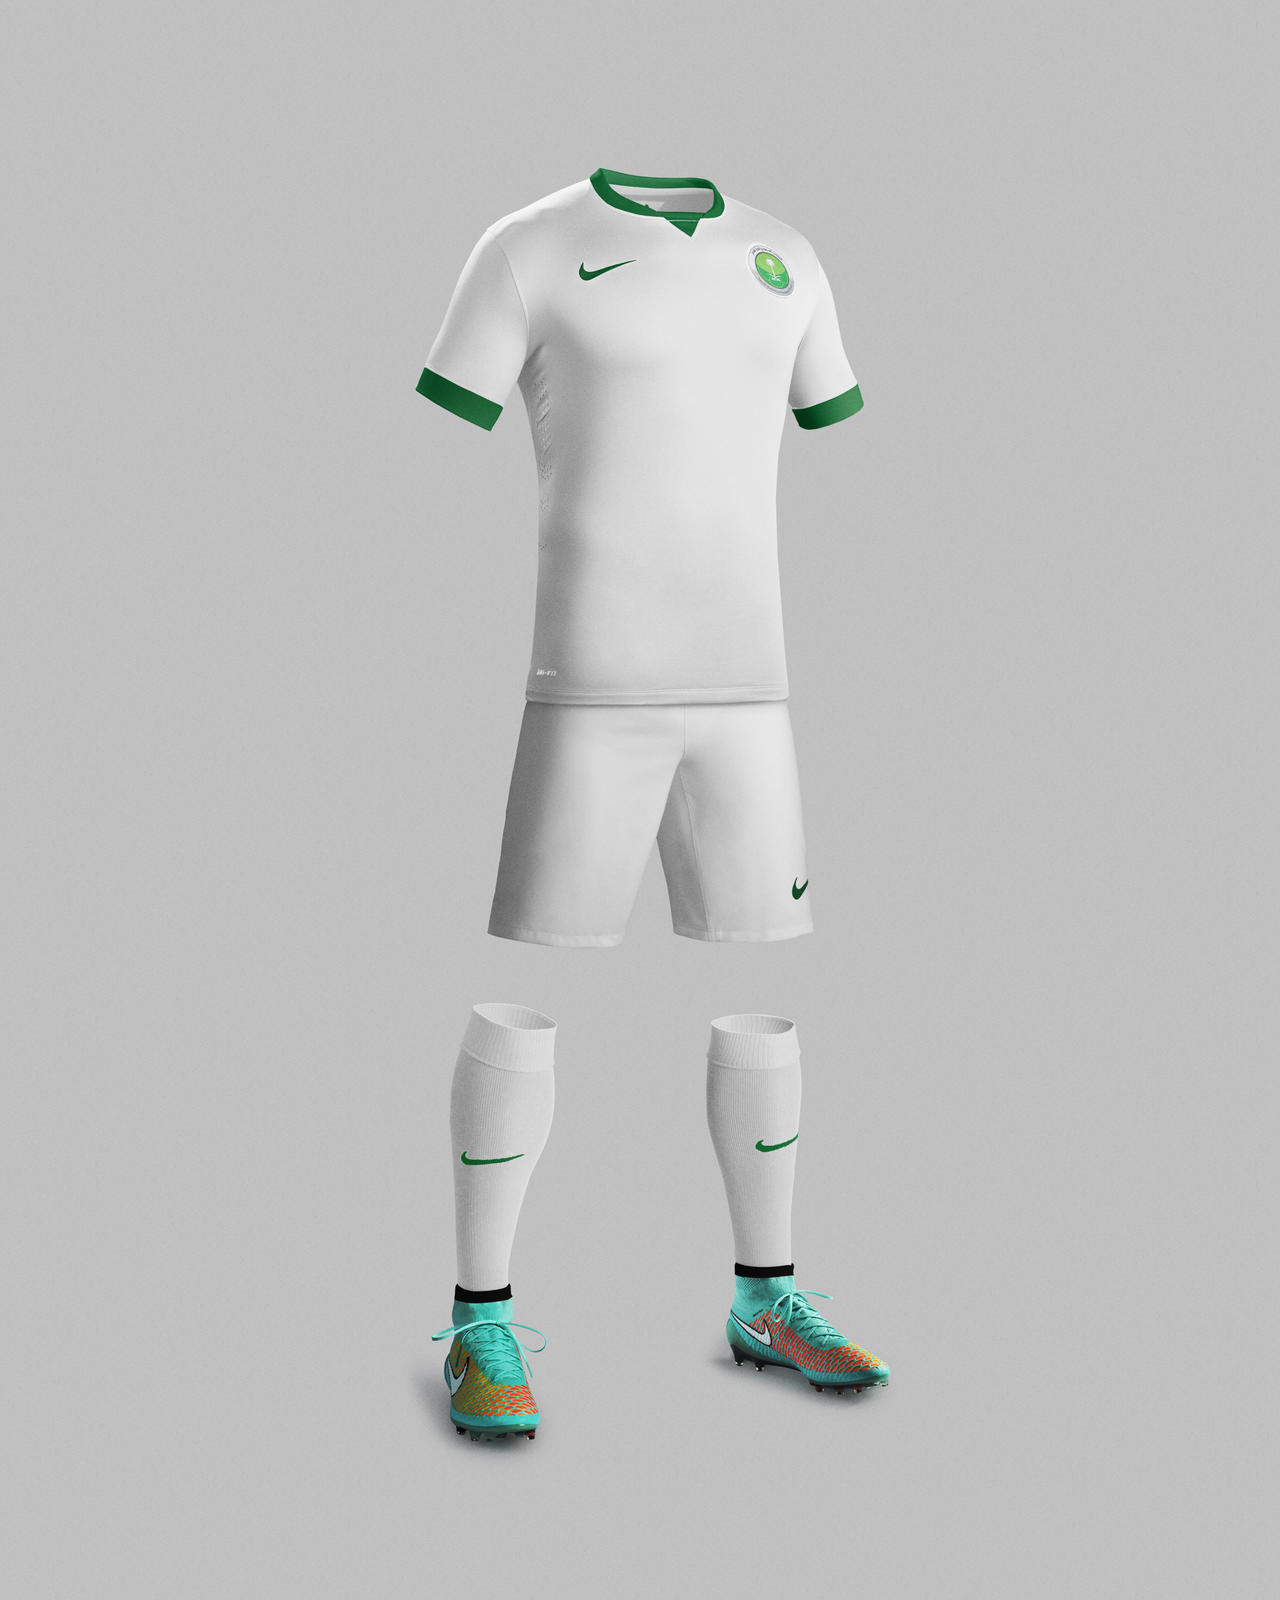 finest selection 91da5 c992d Saudi Arabian Football Federation and Nike unveils new ...